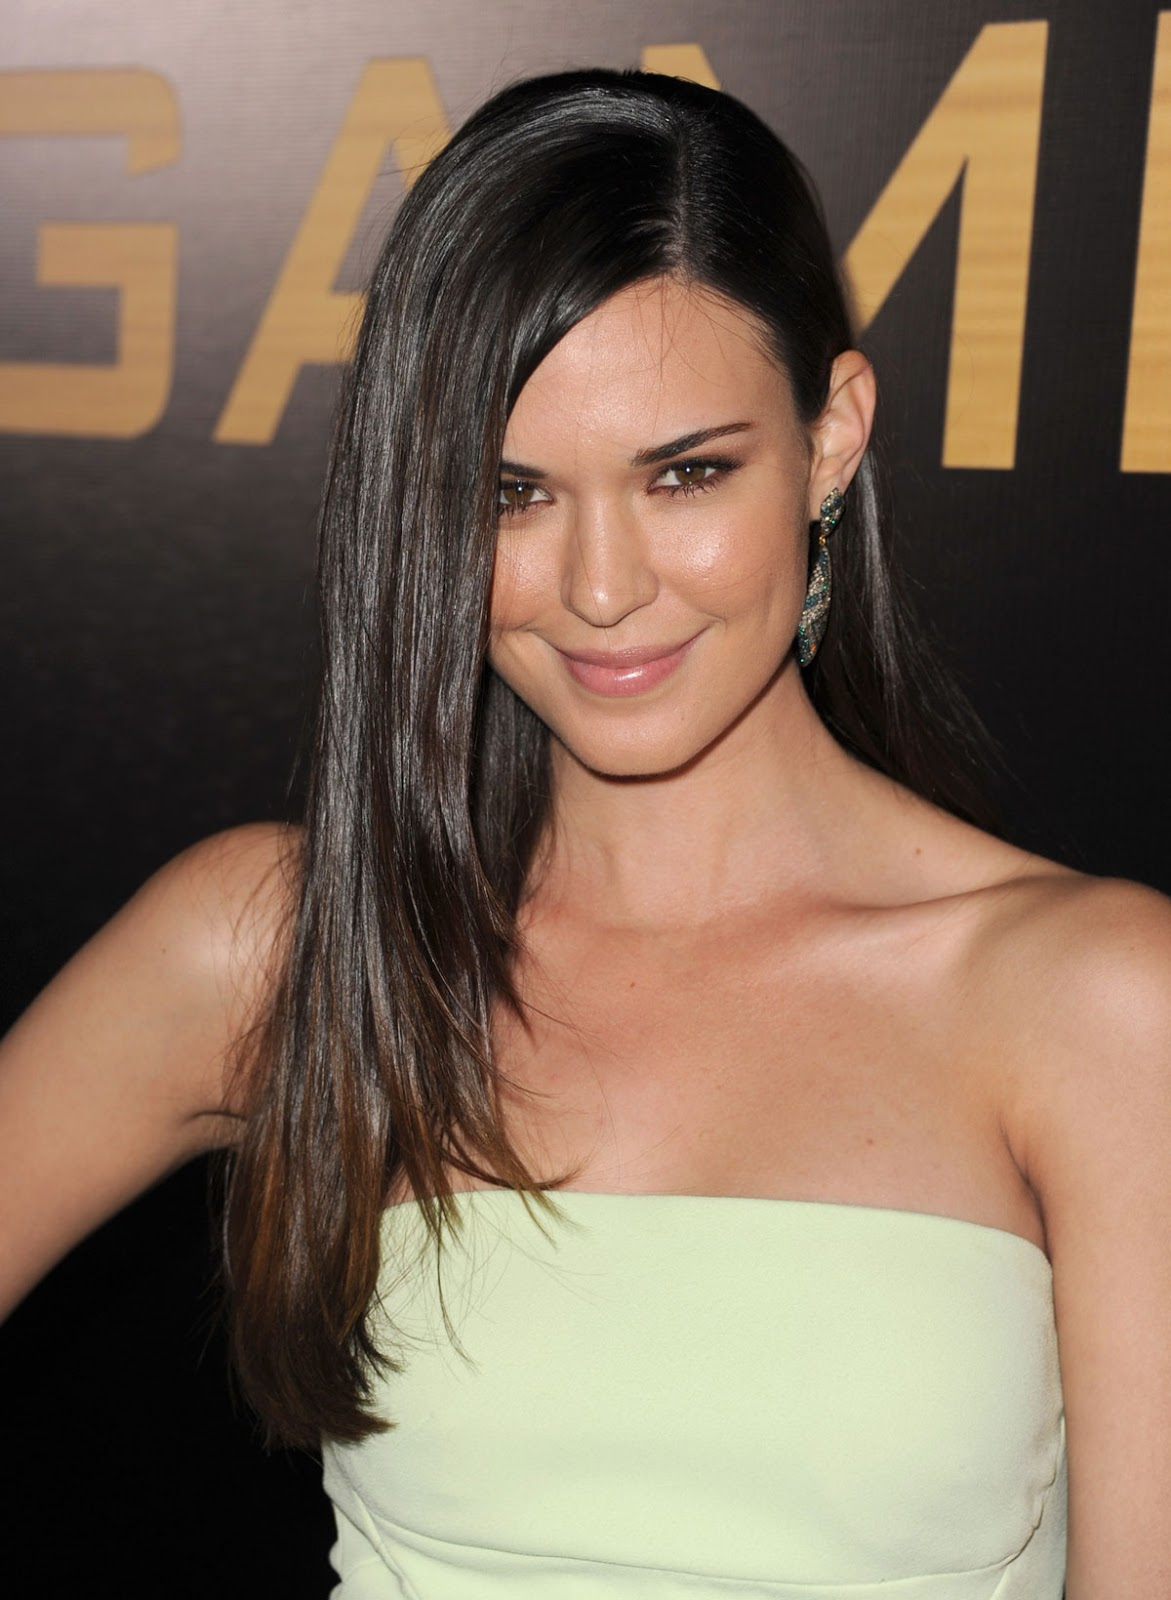 Full HQ Images of Odette Annable in Yellow dress At The Hunger Games Premiere In Los Angeles